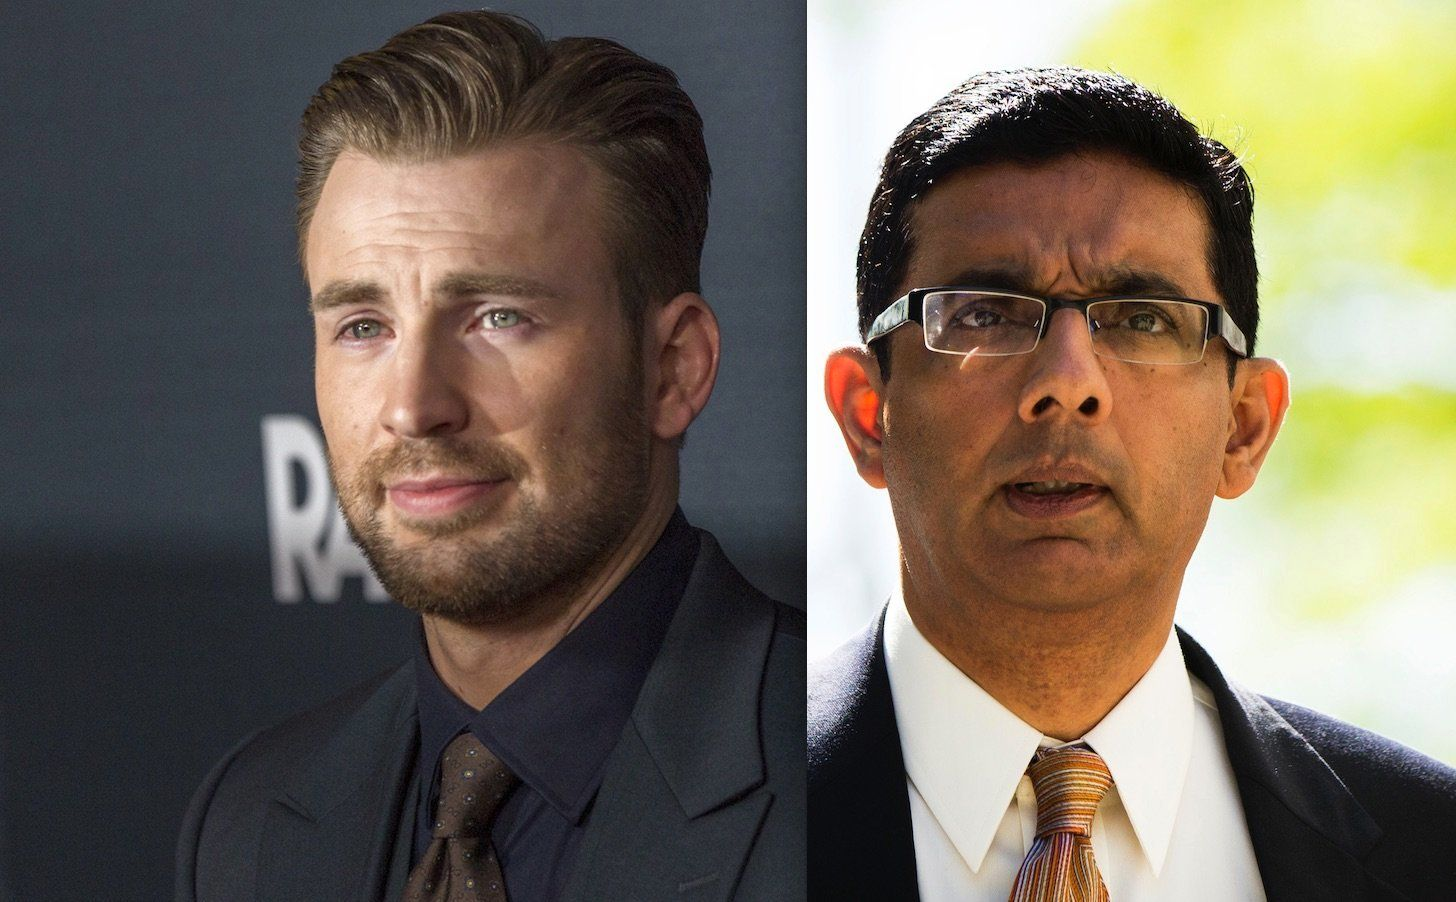 Chris Evans Shreds Right-Wing 'Pile Of Trash' Who Mocked School Shooting